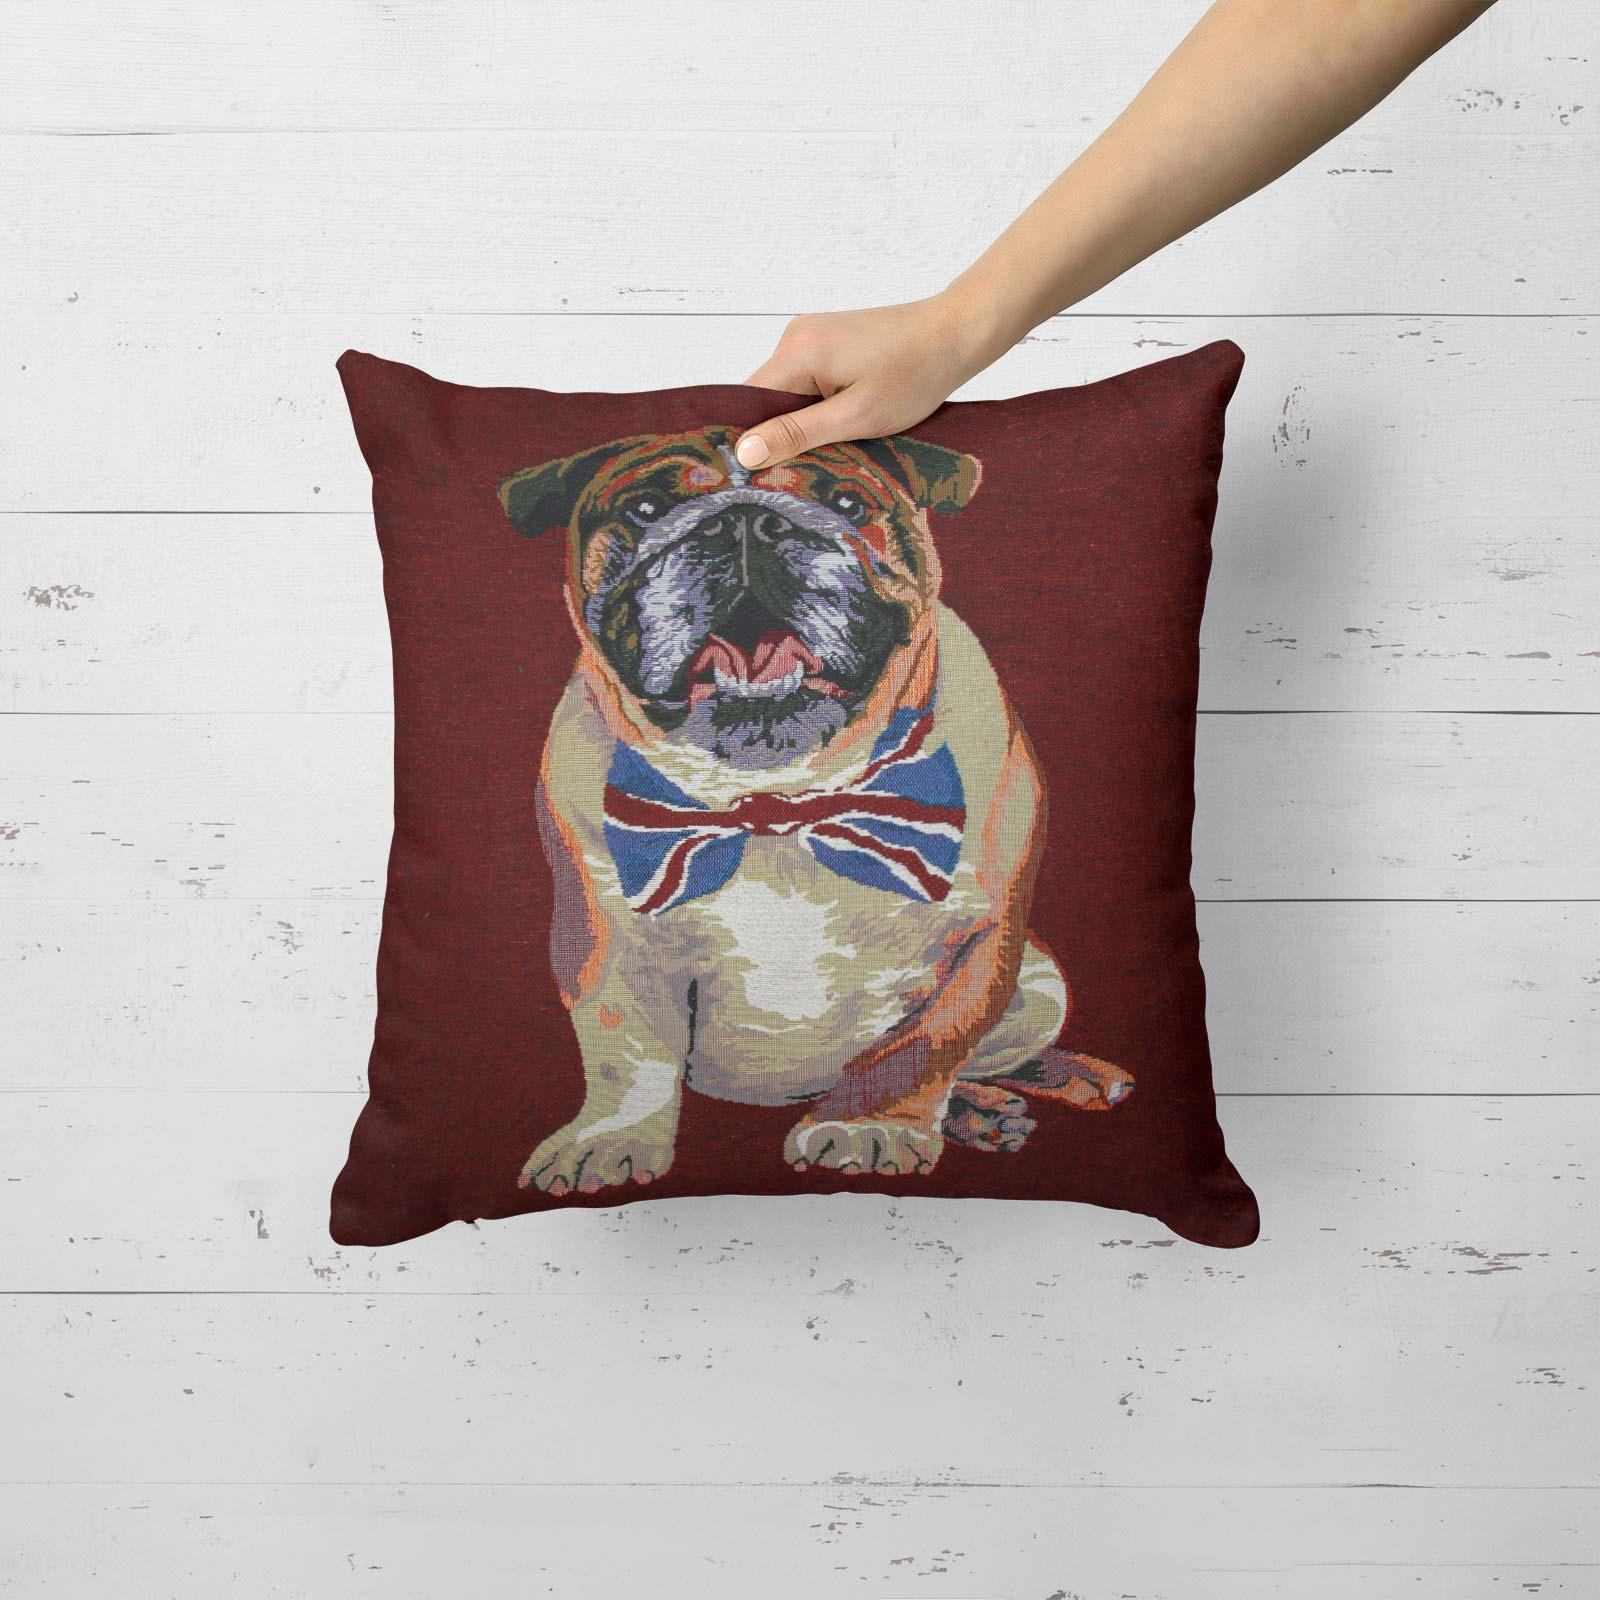 Tapestry-Cushion-Covers-Vintage-Pillow-Cover-Collection-18-034-45cm-Filled-Cushions thumbnail 242